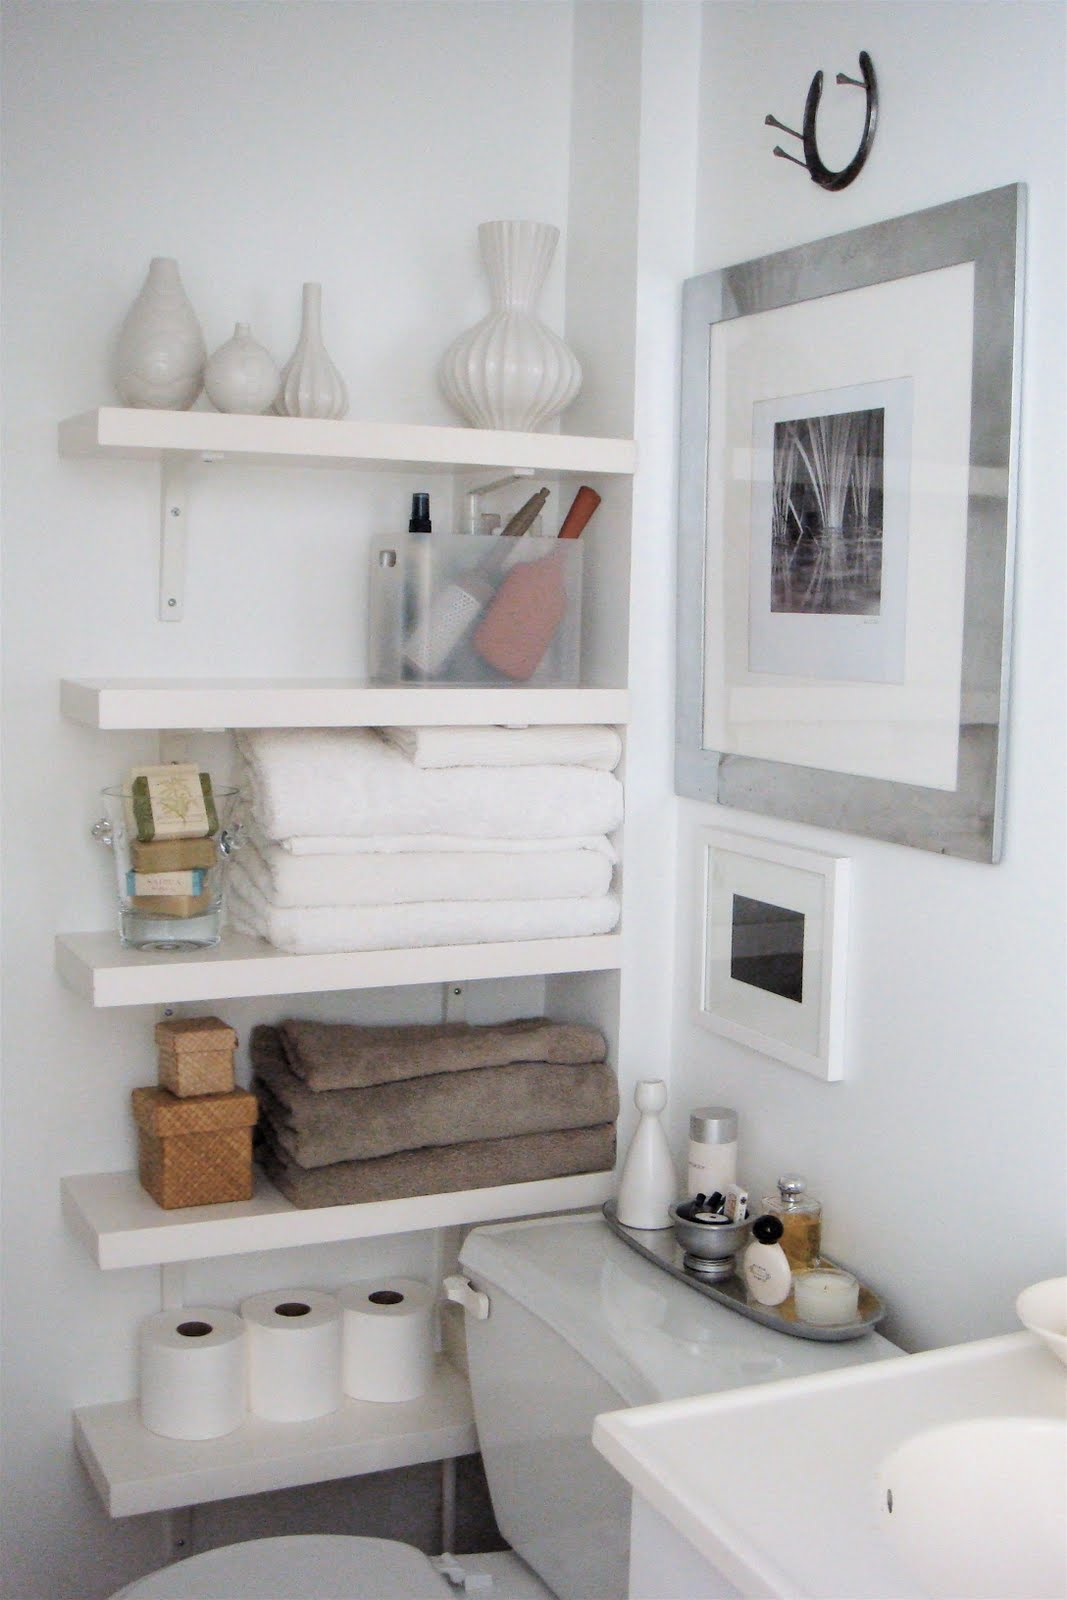 Operation organization professional organizer peachtree How to organize bathroom